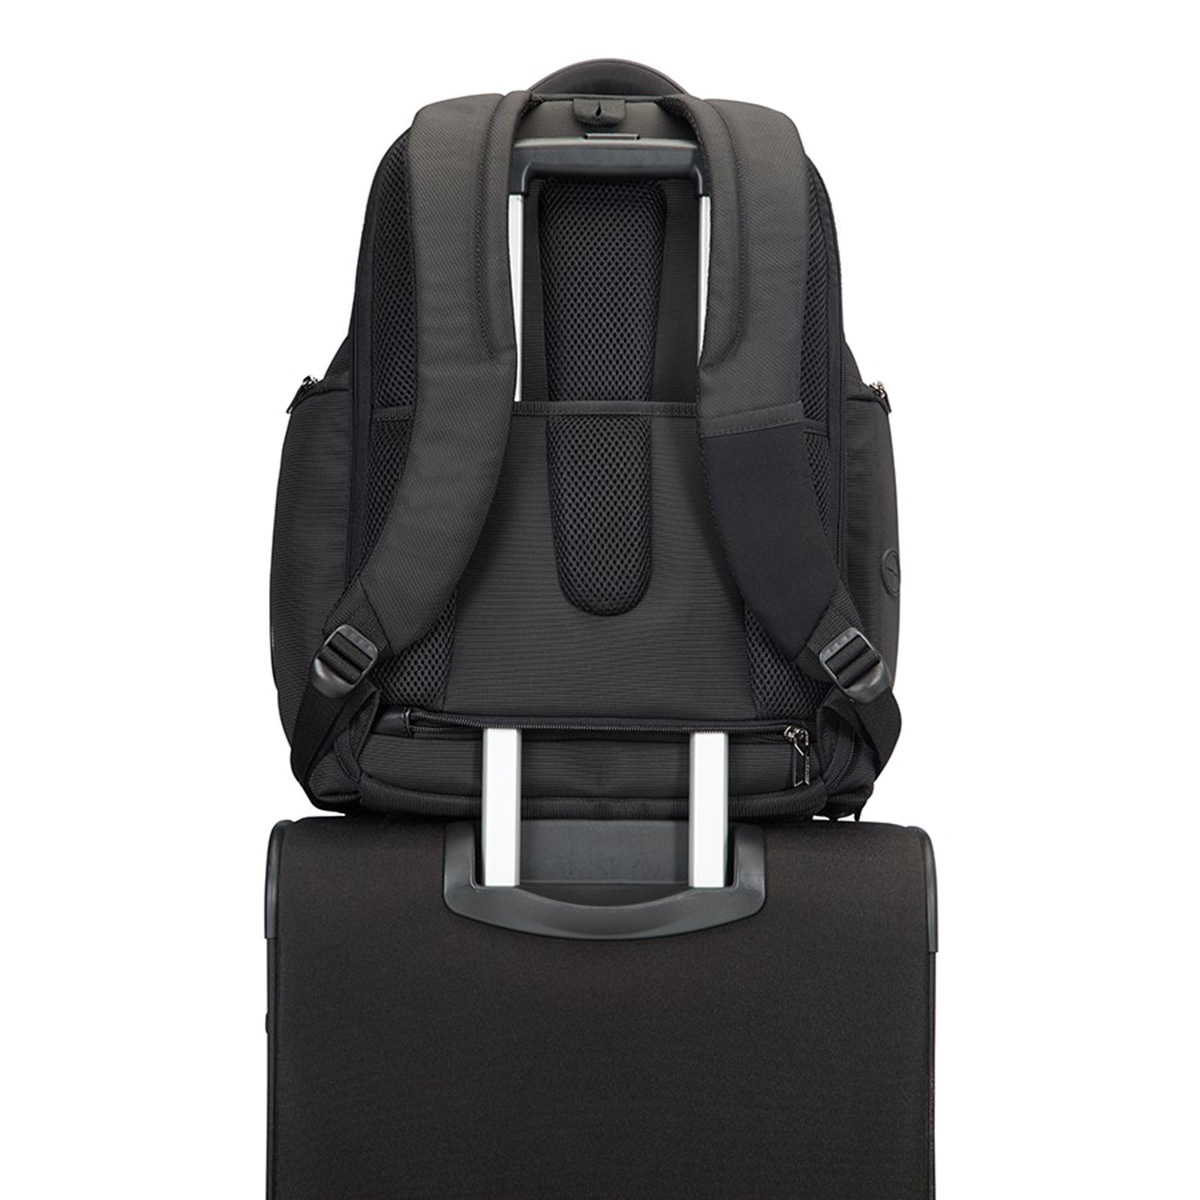 c059b0ef4f Σακίδιο Πλάτης Samsonite XBR Laptop Backpack 15.6